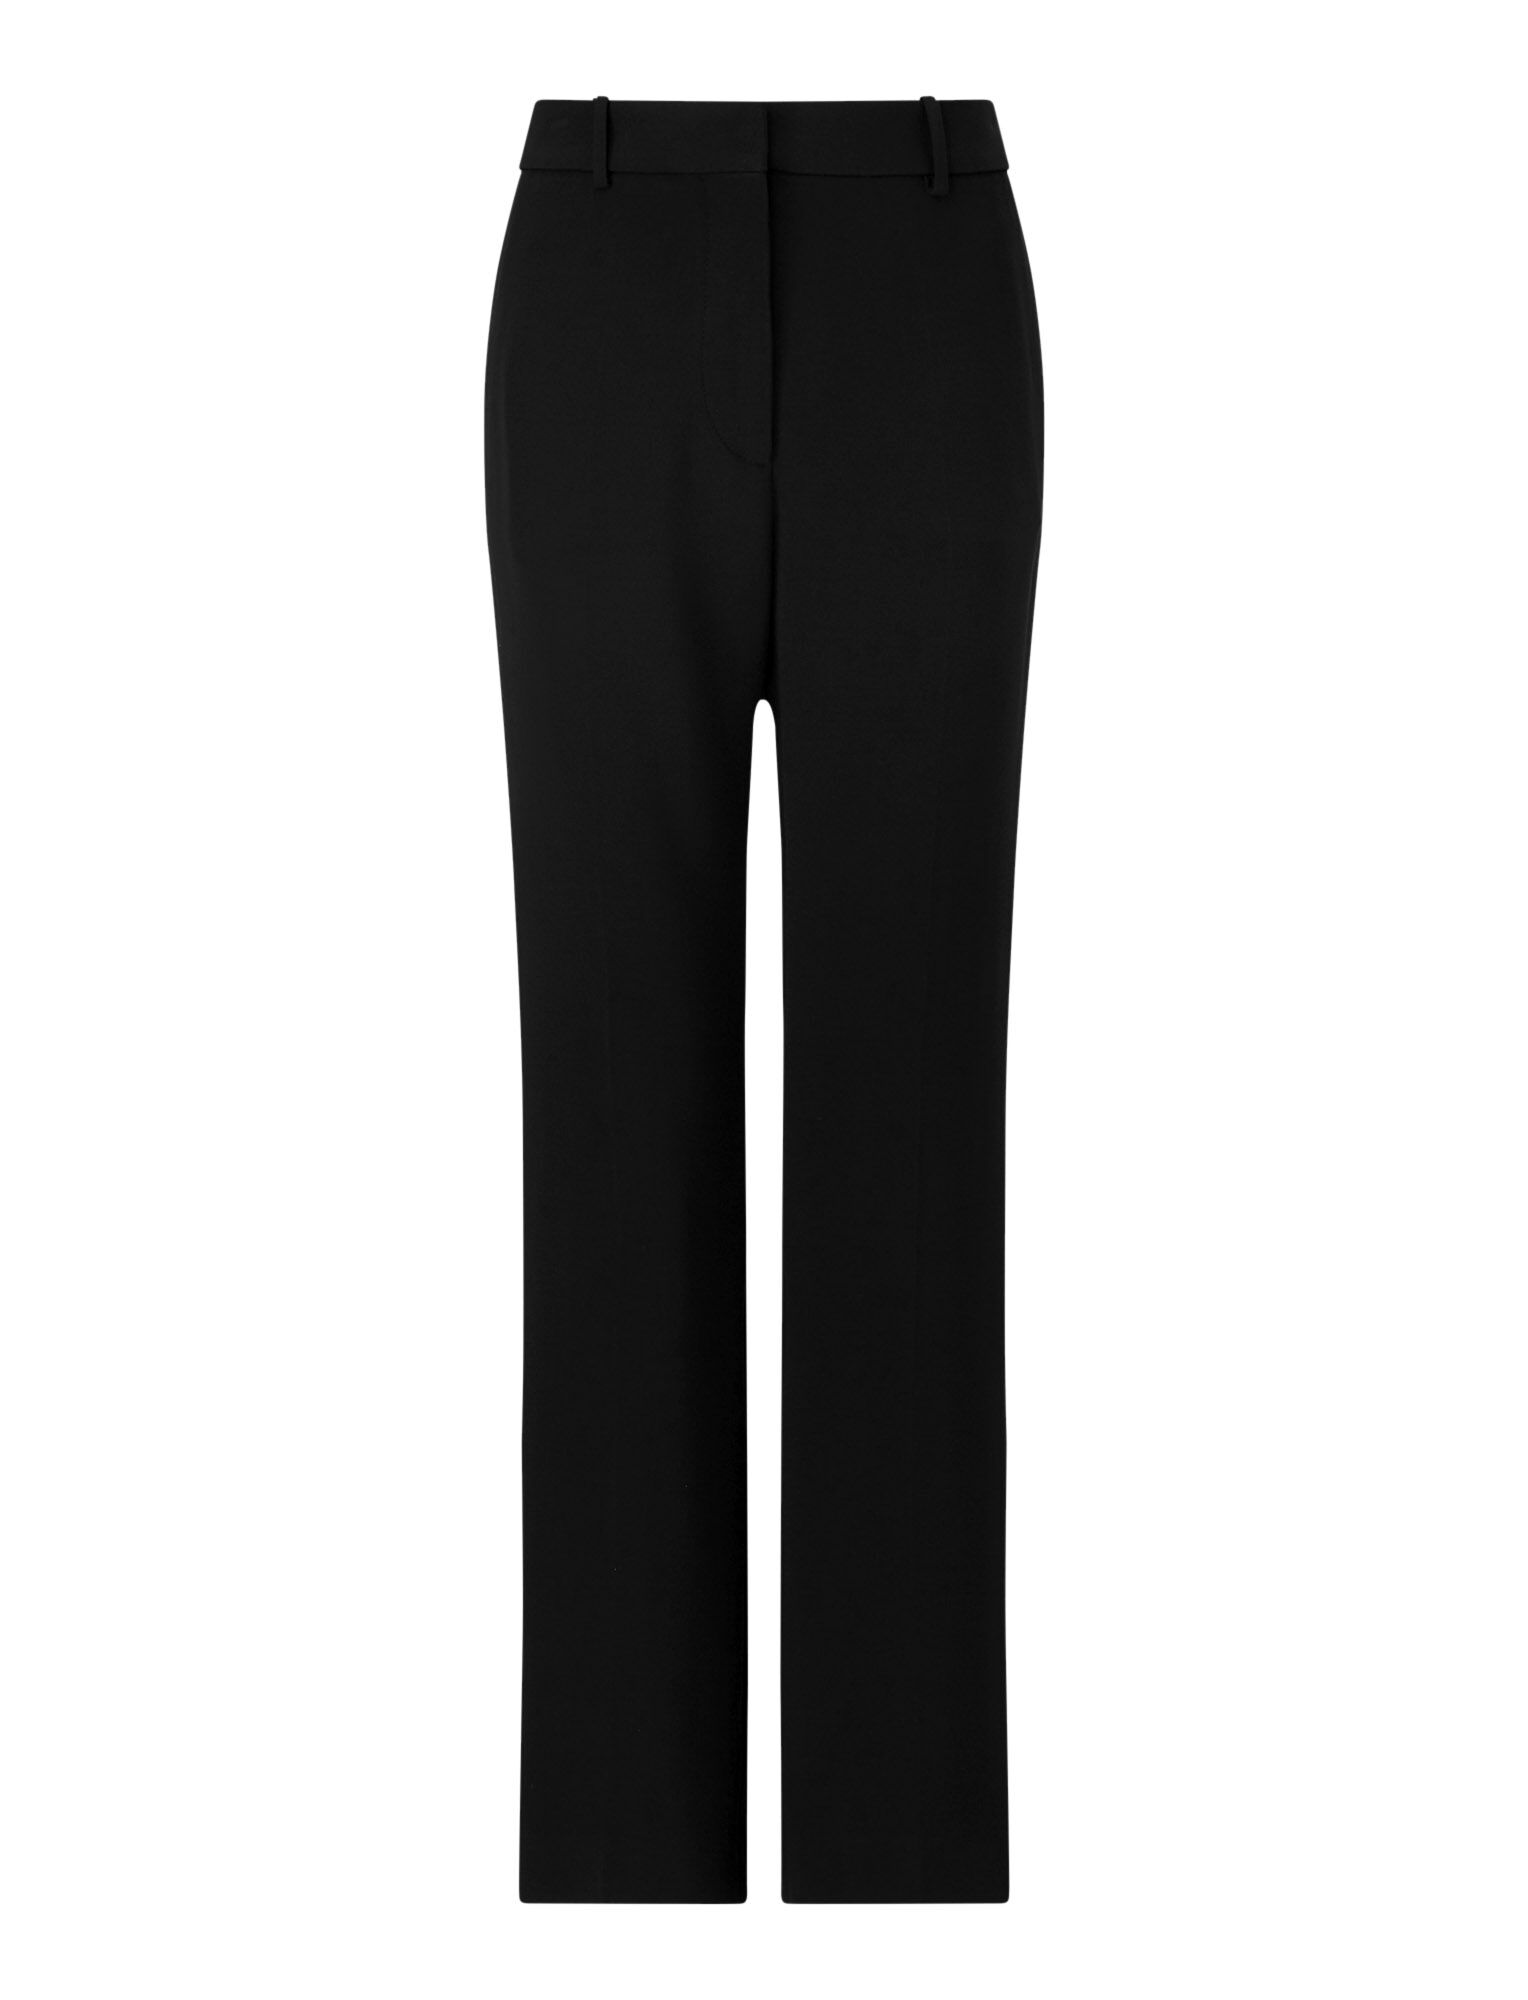 Joseph, Coleman Stretch Cady Trousers, in BLACK